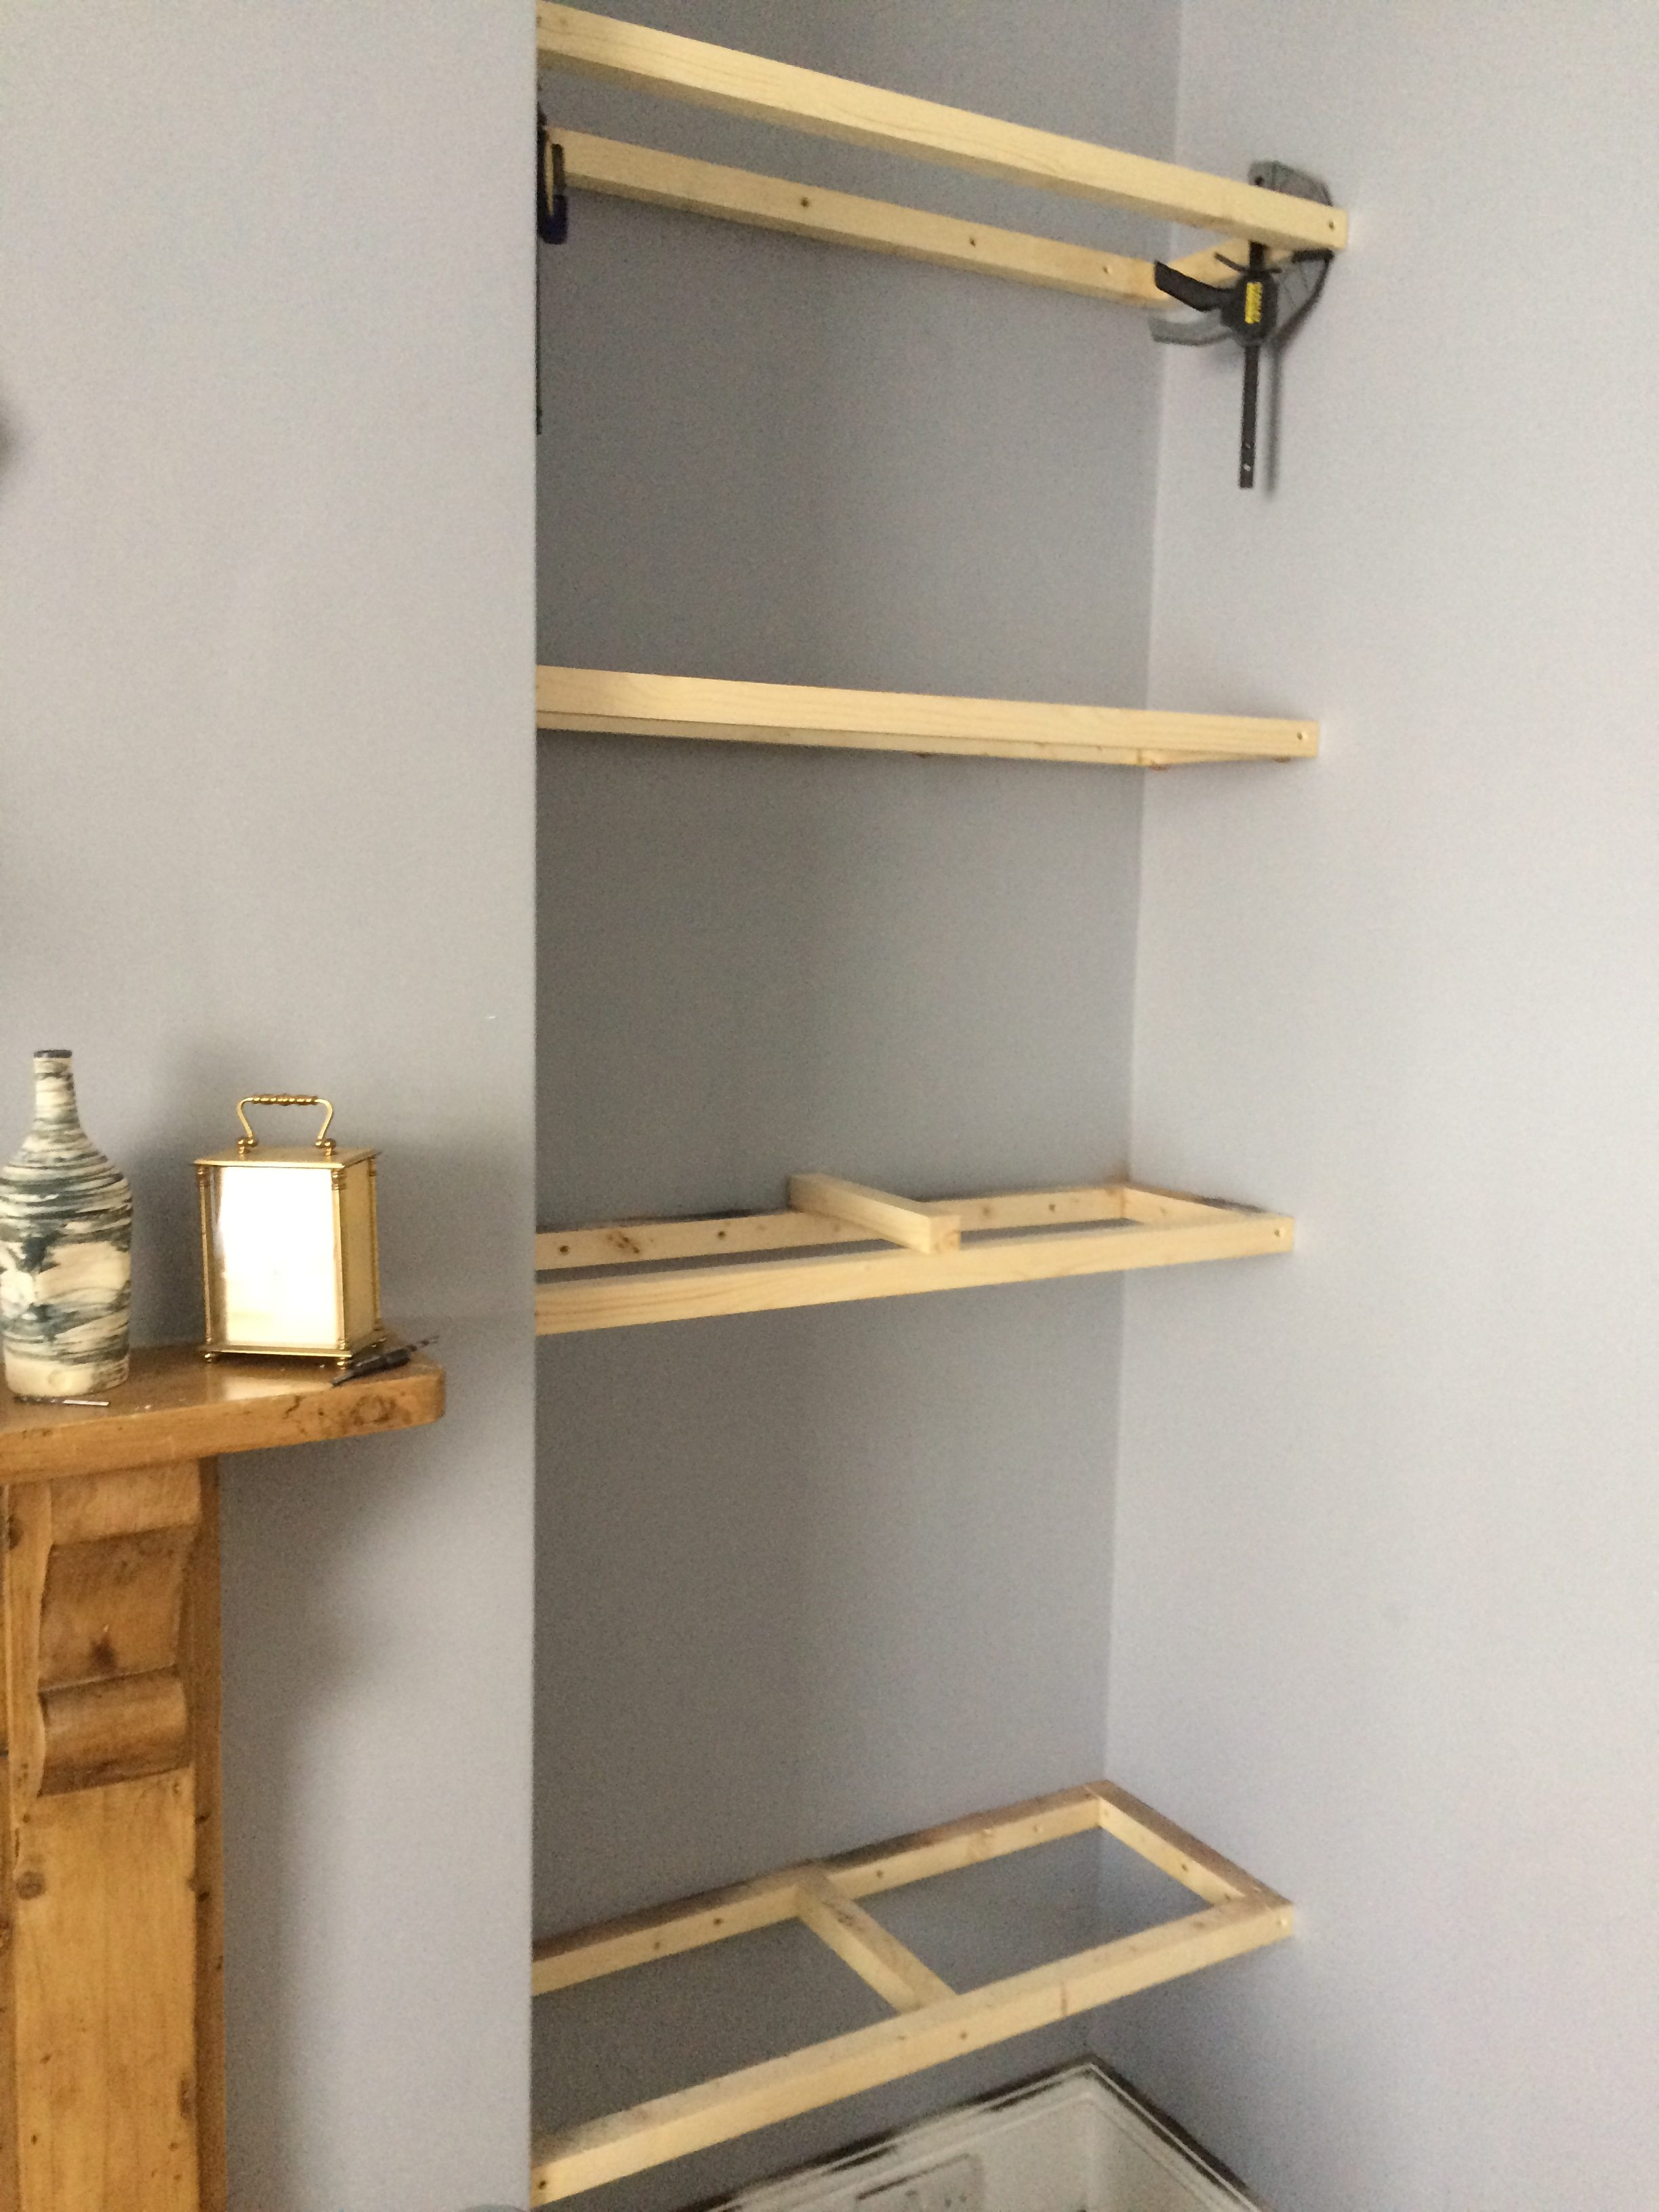 Astonishing How To Build Floating Shelves In An Alcove Old Man Grumbling Interior Design Ideas Inesswwsoteloinfo